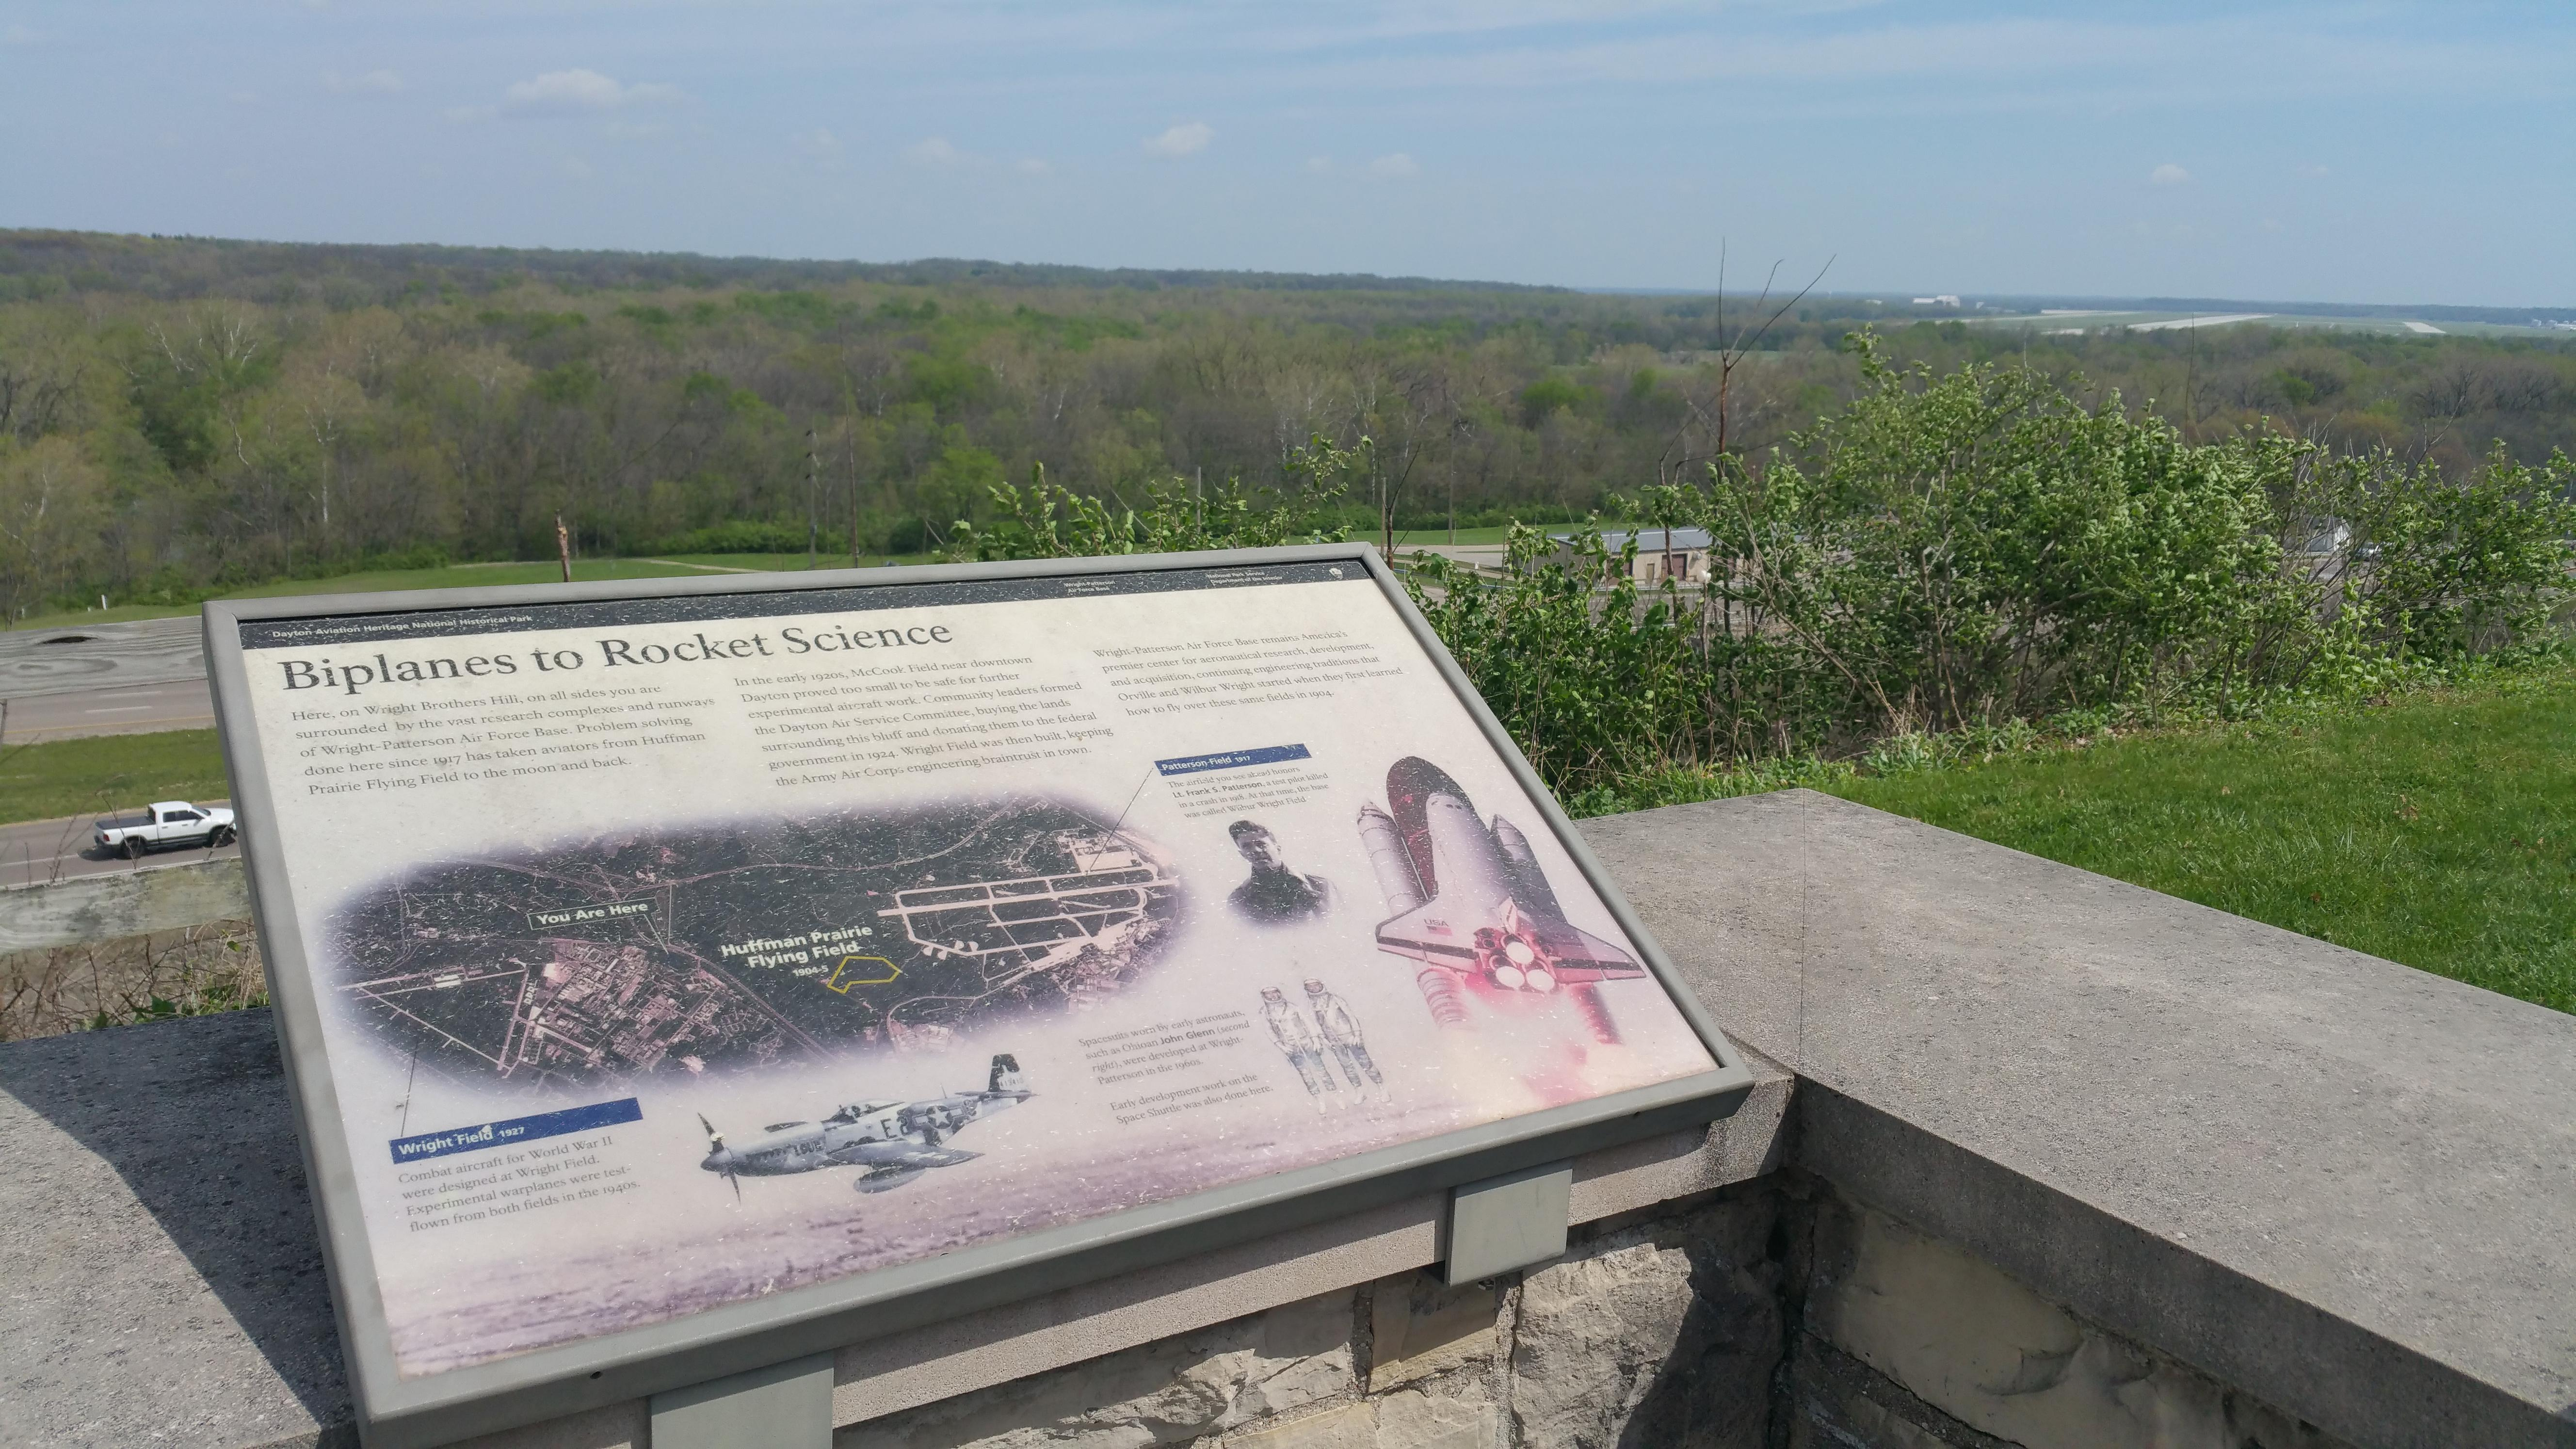 From the field's overlook, one can almost see the spot where the brothers tested their designs.